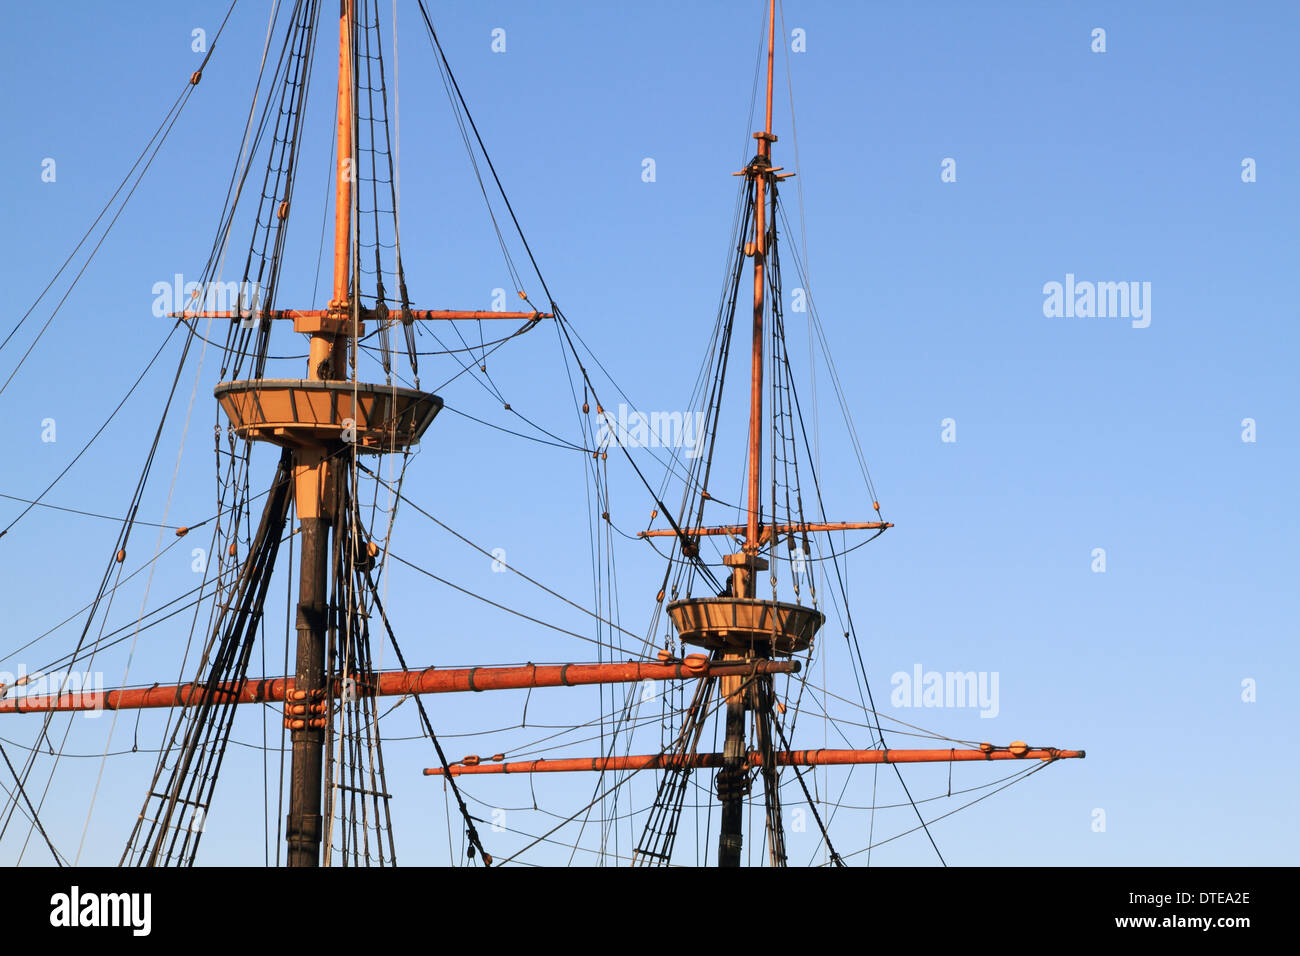 A replica of the Mayflower in the harbor at Plymouth, Massachusetts, USA. Image isolating the masts and crowsnest - Stock Image